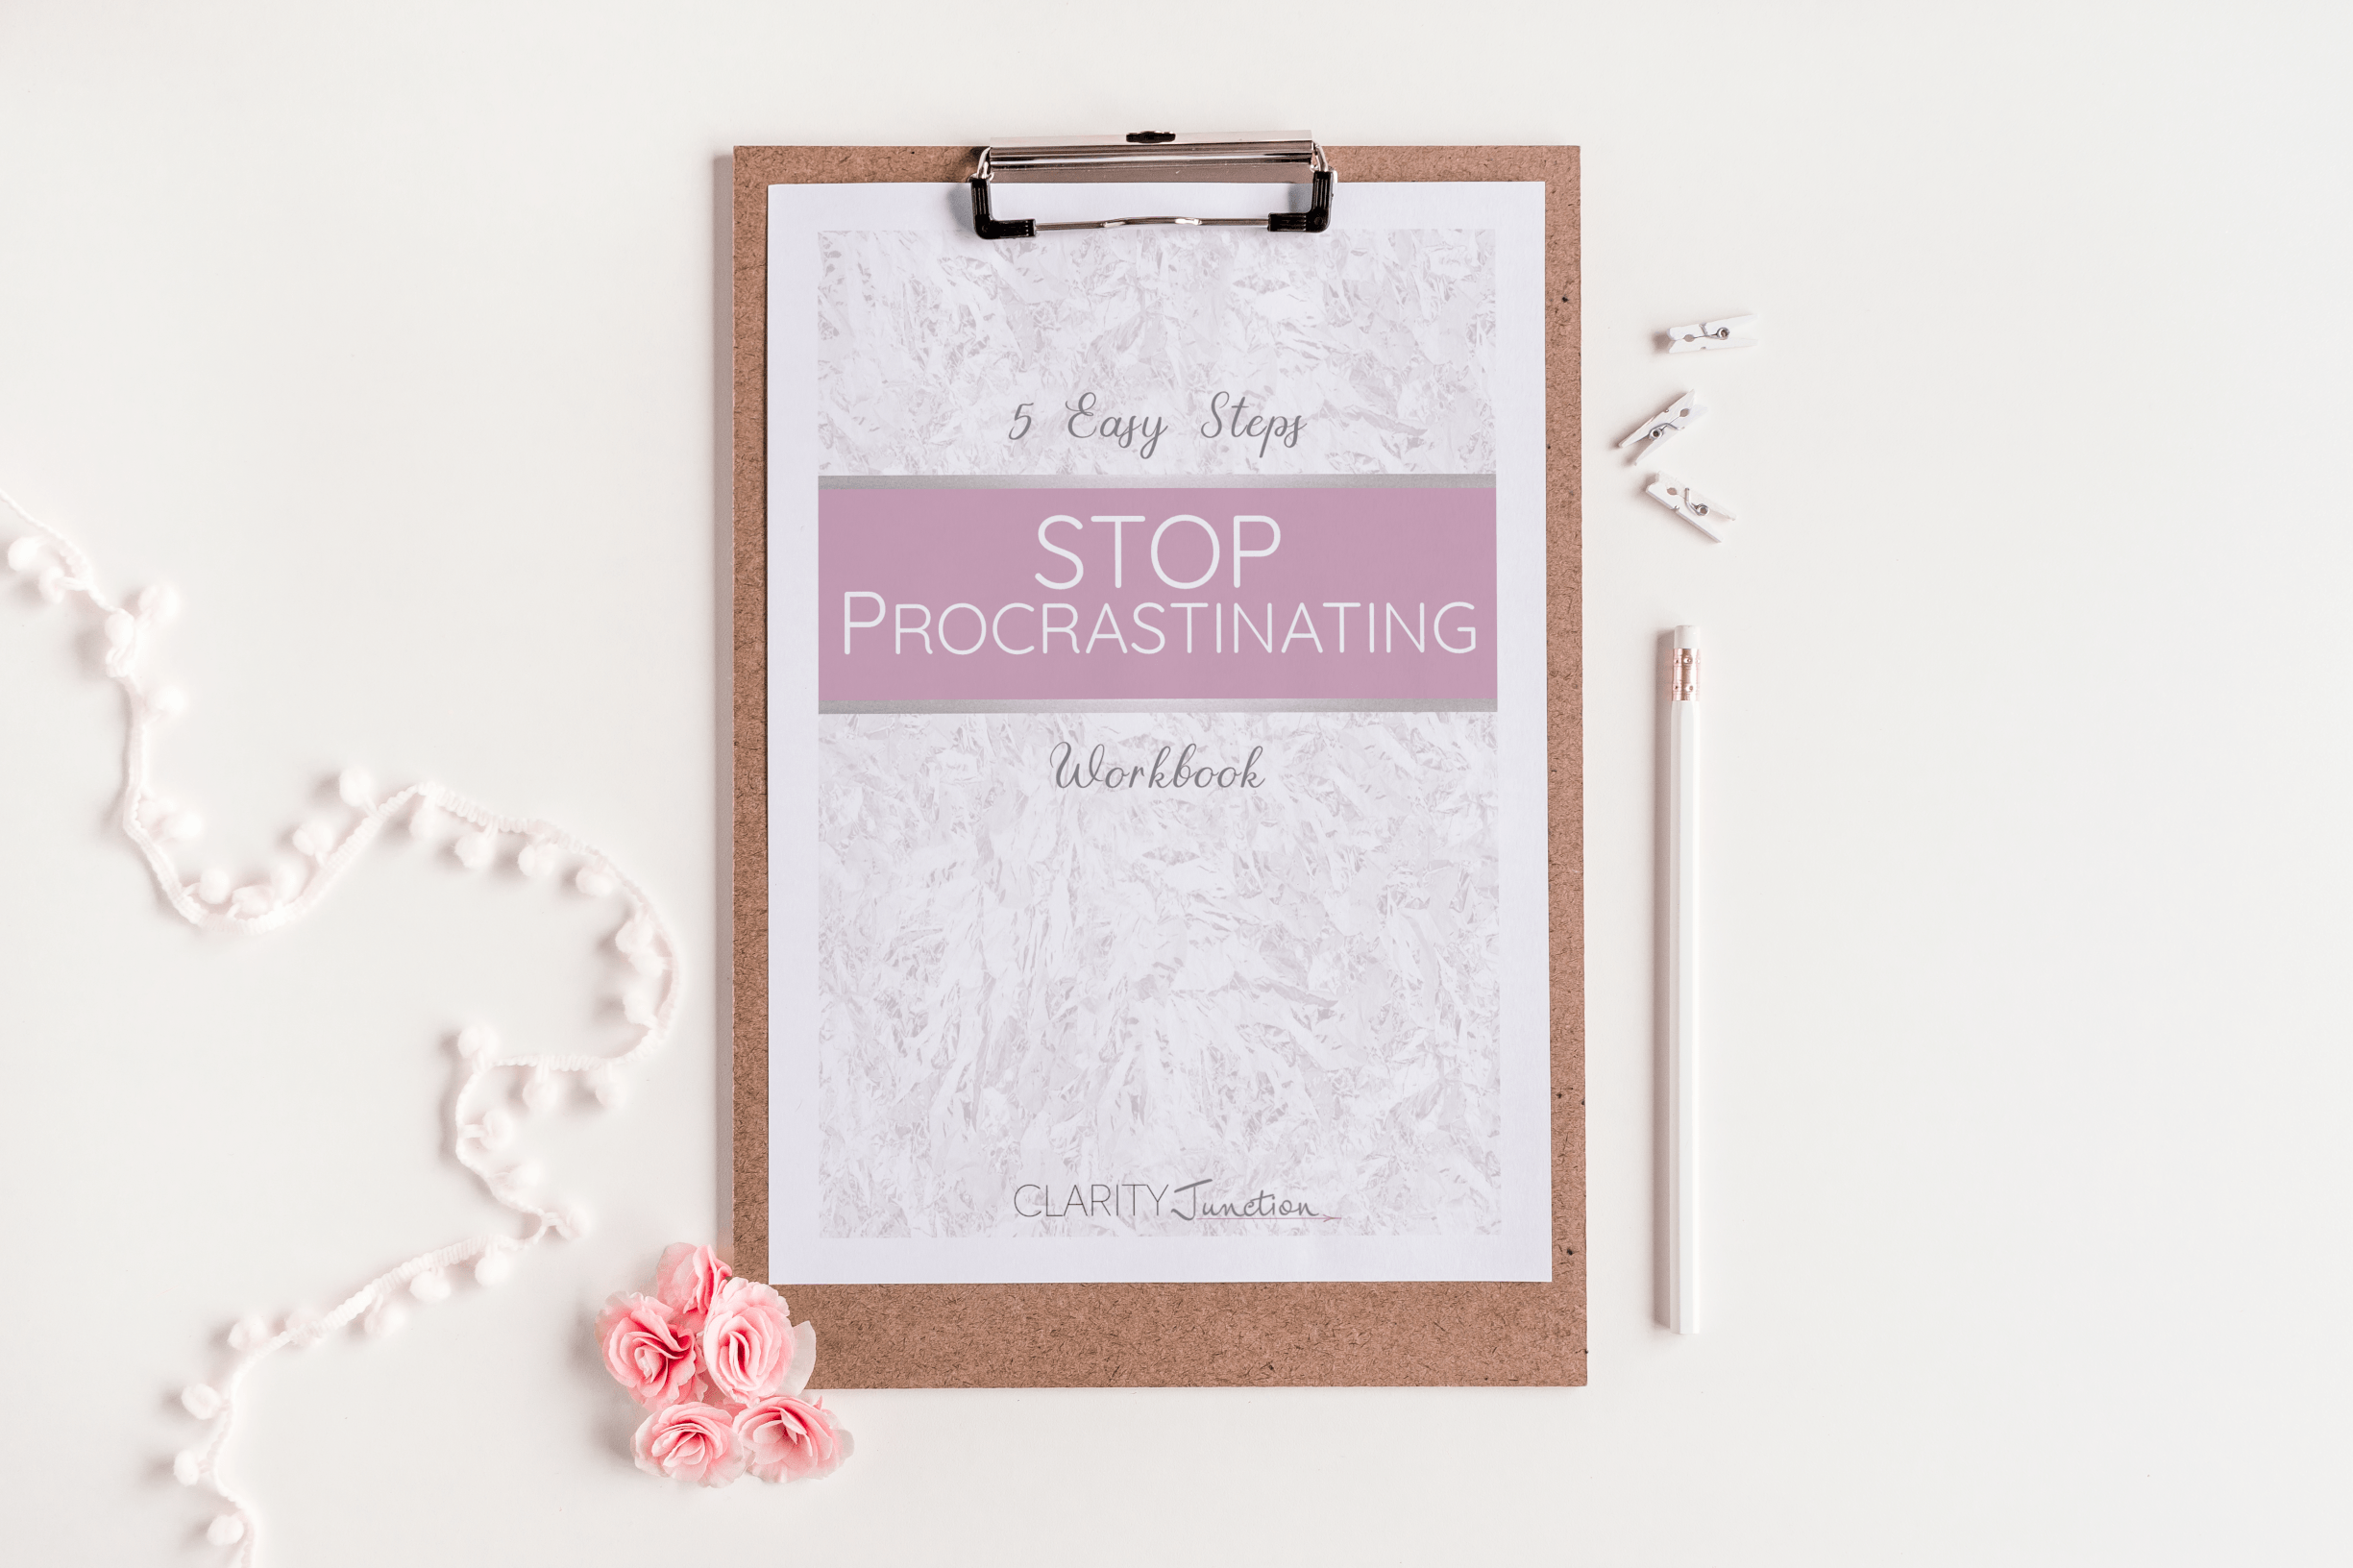 Stop Procastinating Workbook